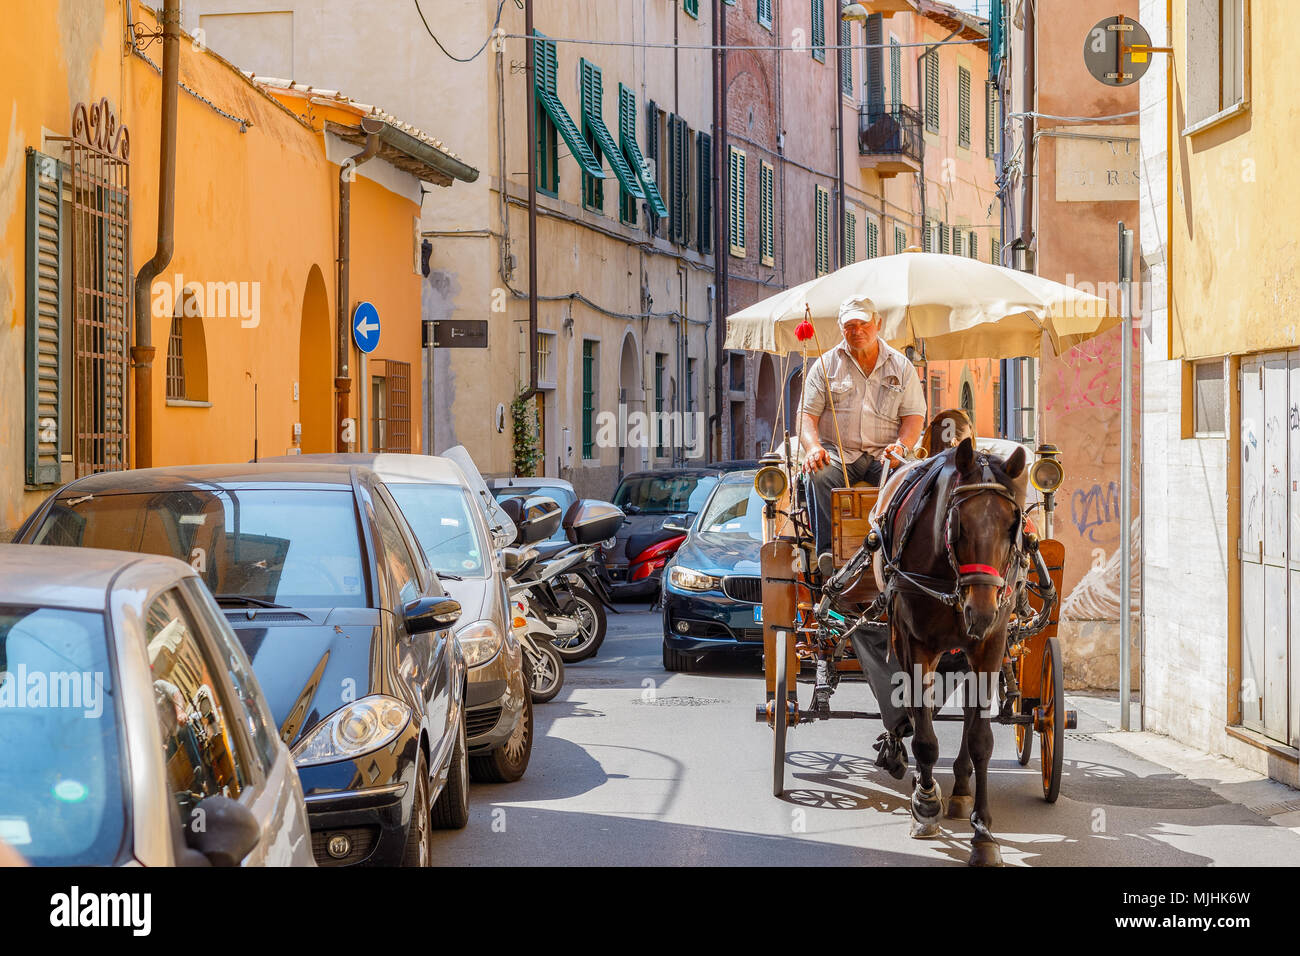 Pisa, Italy - May 4, 2018 - Coachman driving a horse drawn cart on a narrow city street in Pisa - Stock Image